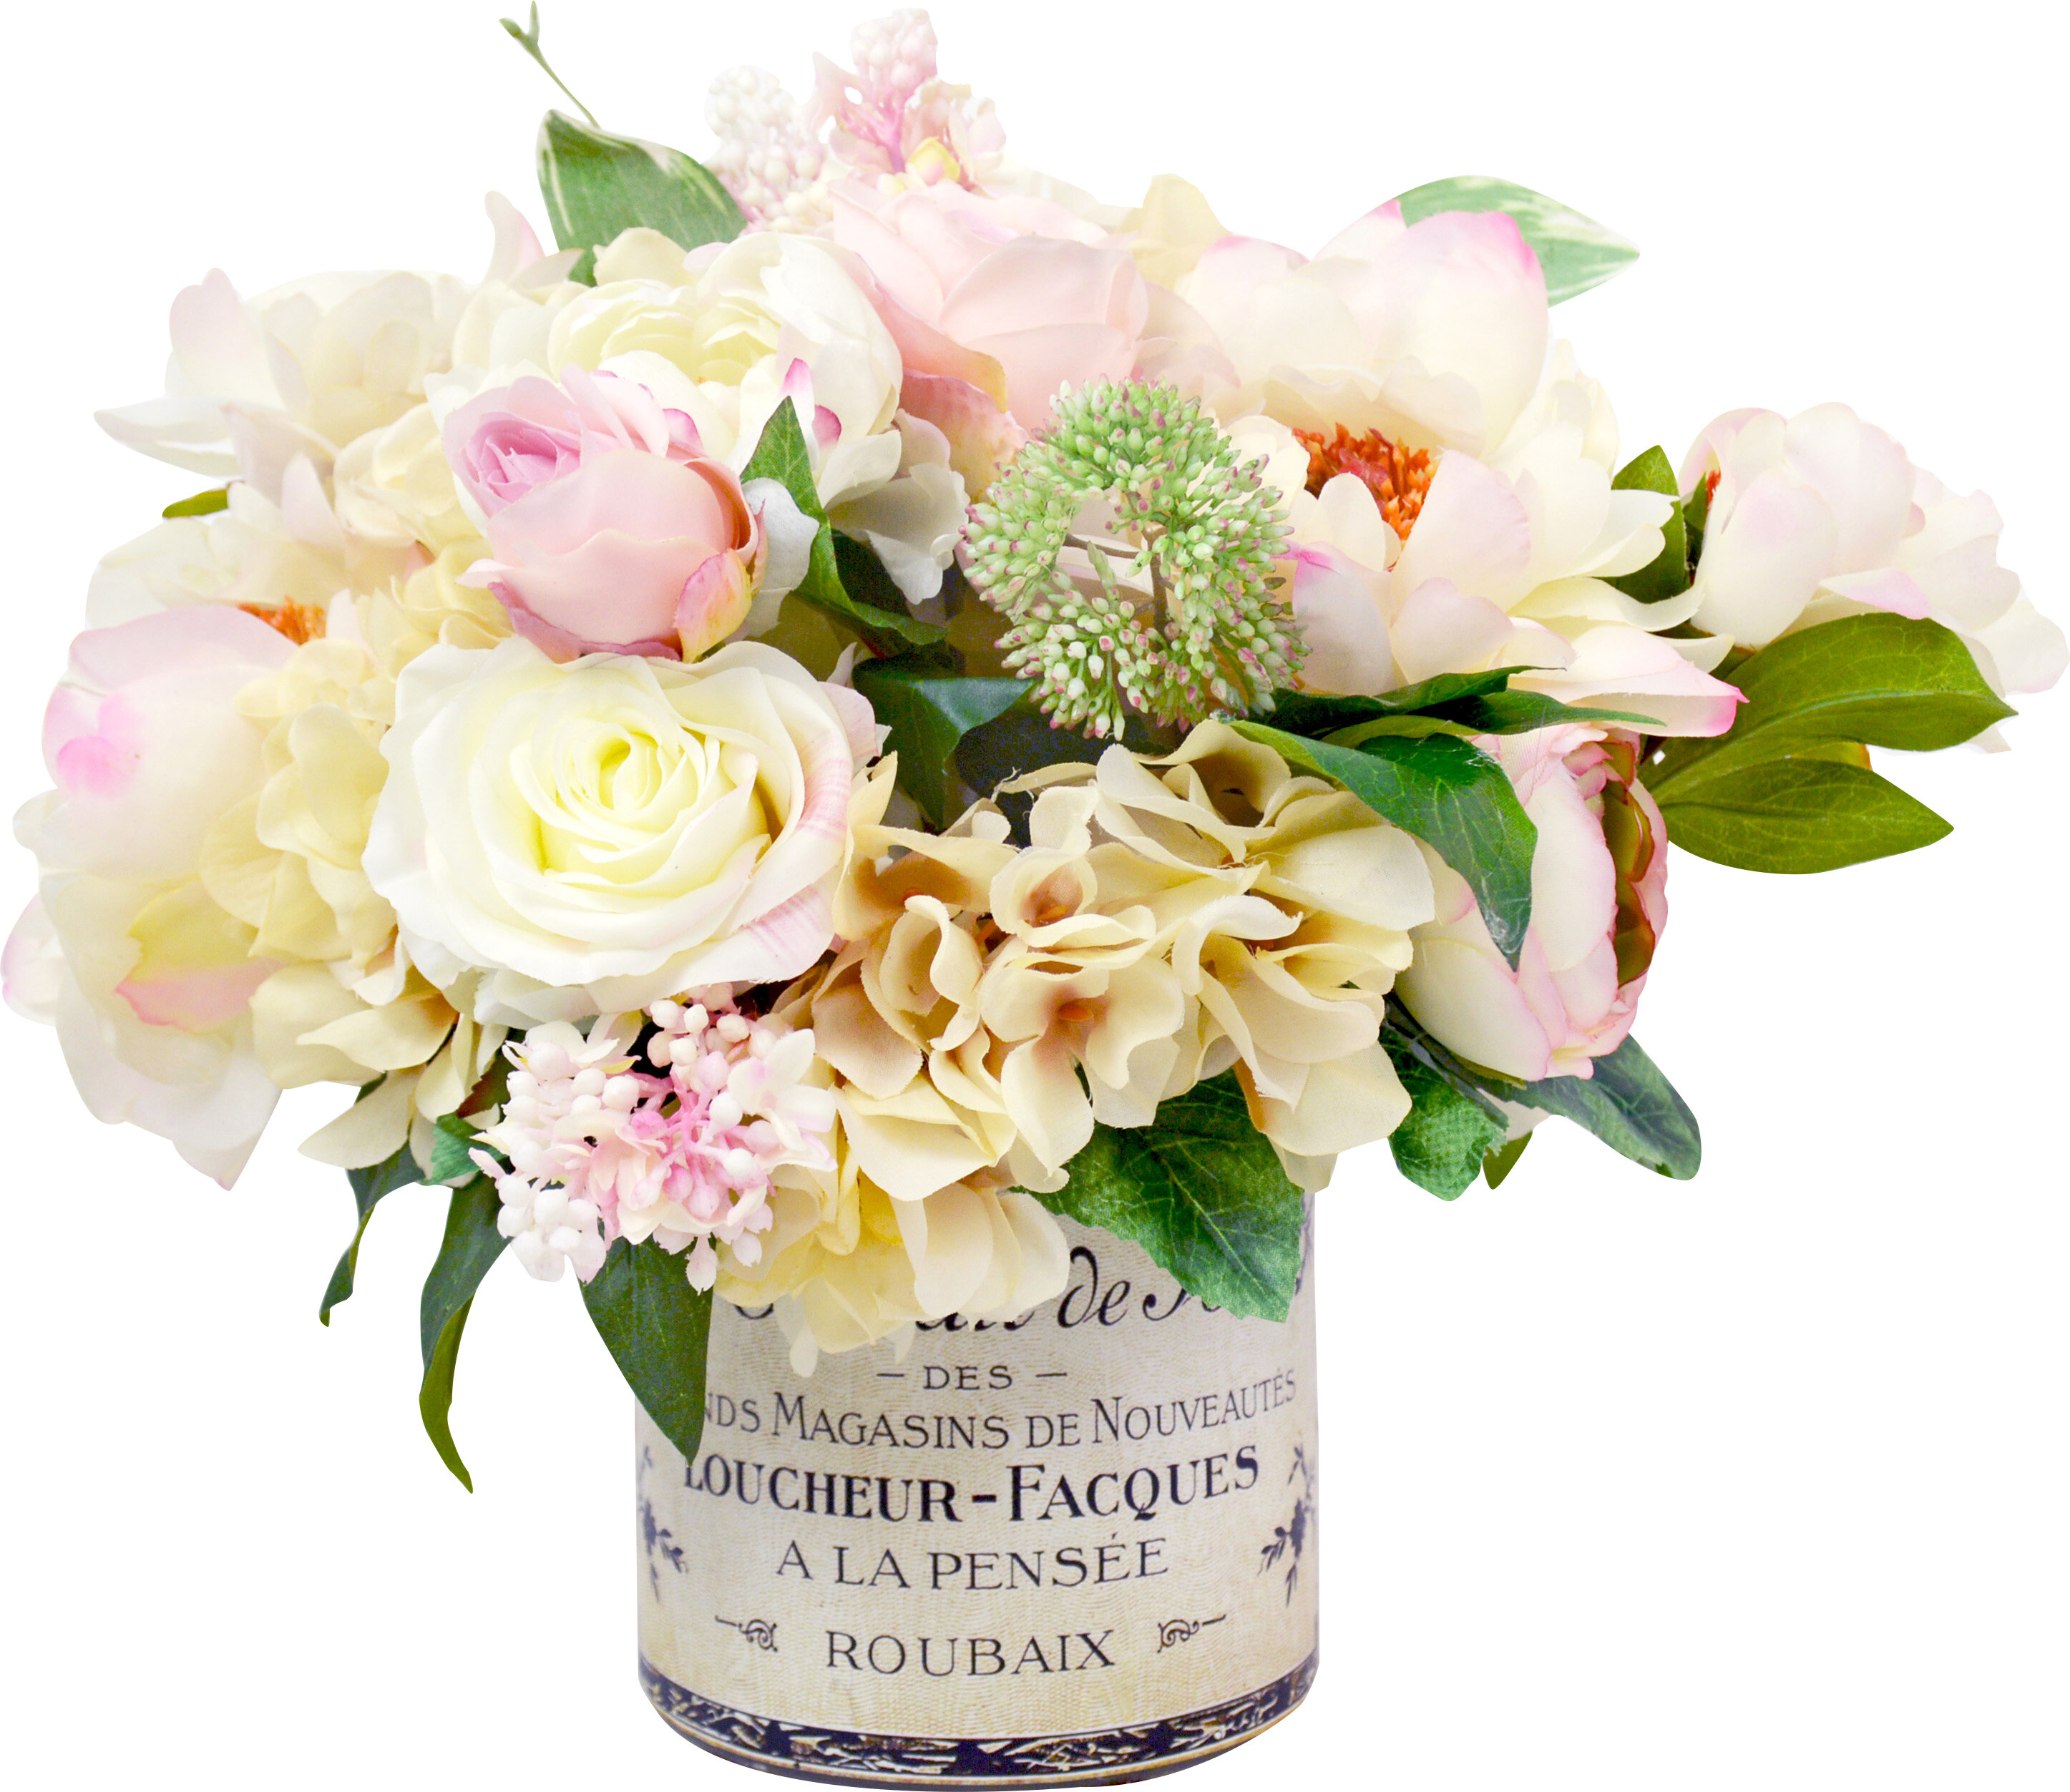 3563ff107 Mixed Peony and Hydrangea Centerpiece in French Label Pot   Reviews ...